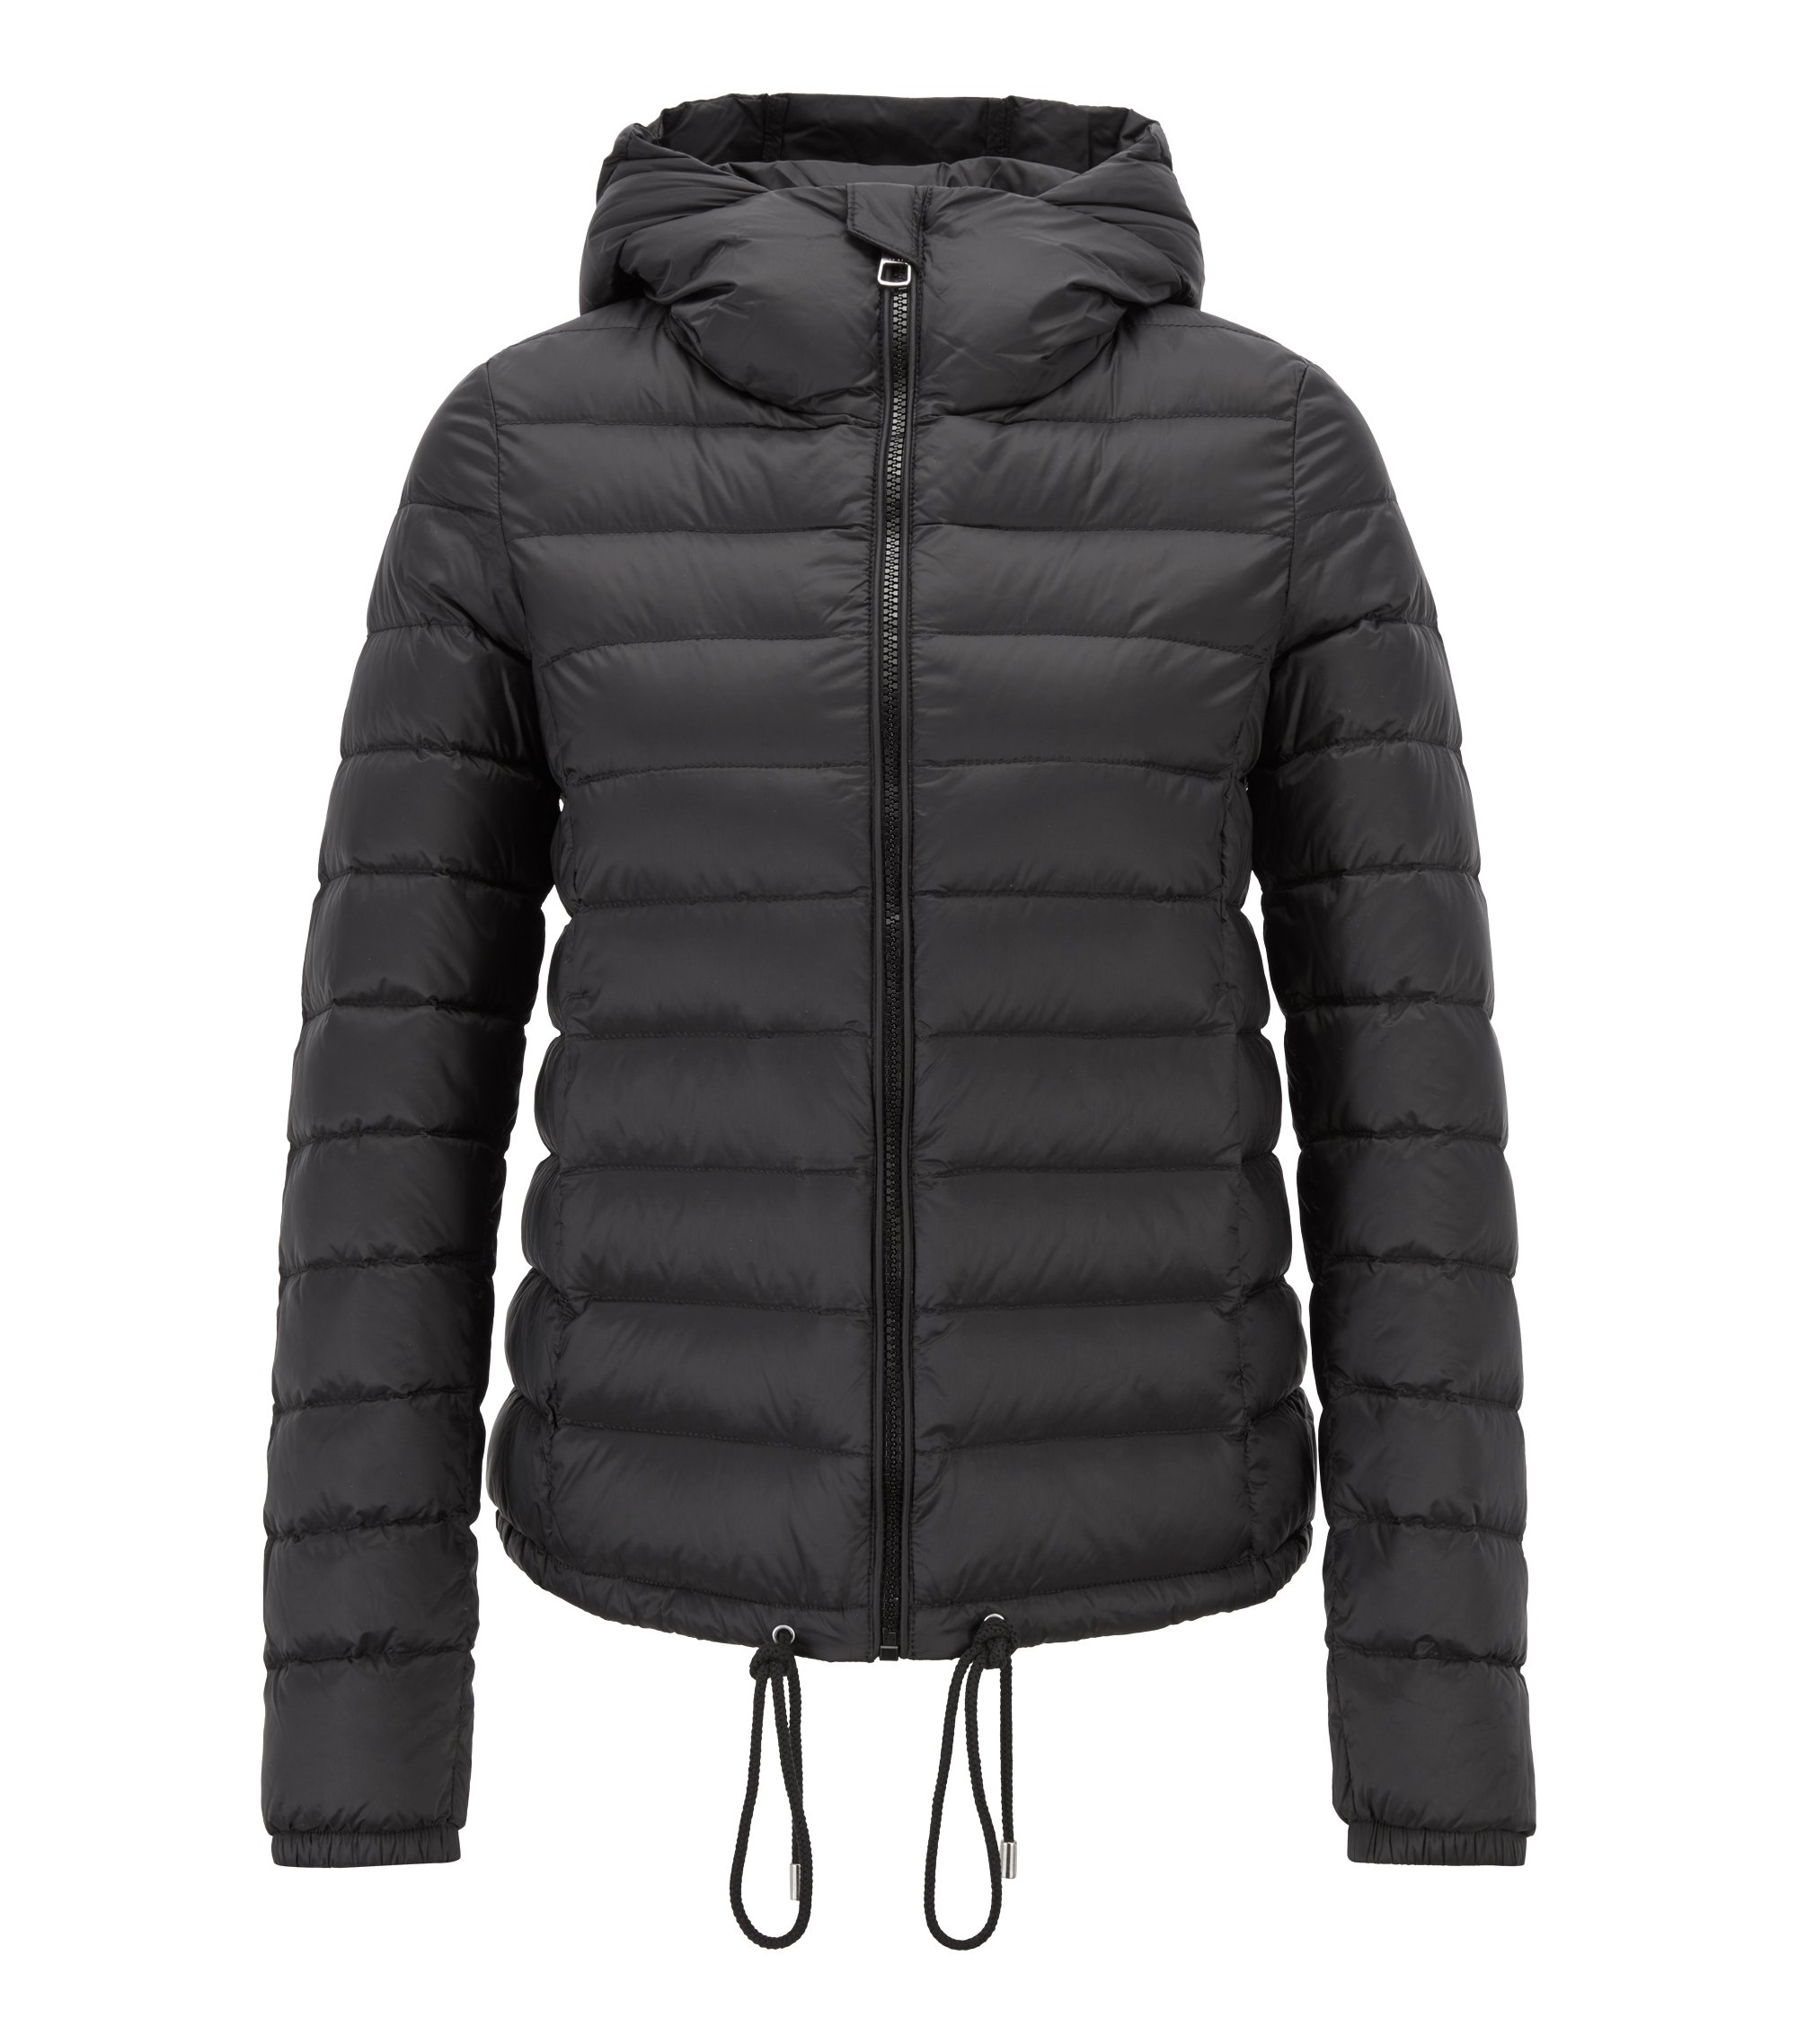 Lightweight down-filled jacket with water-repellent outer, Black